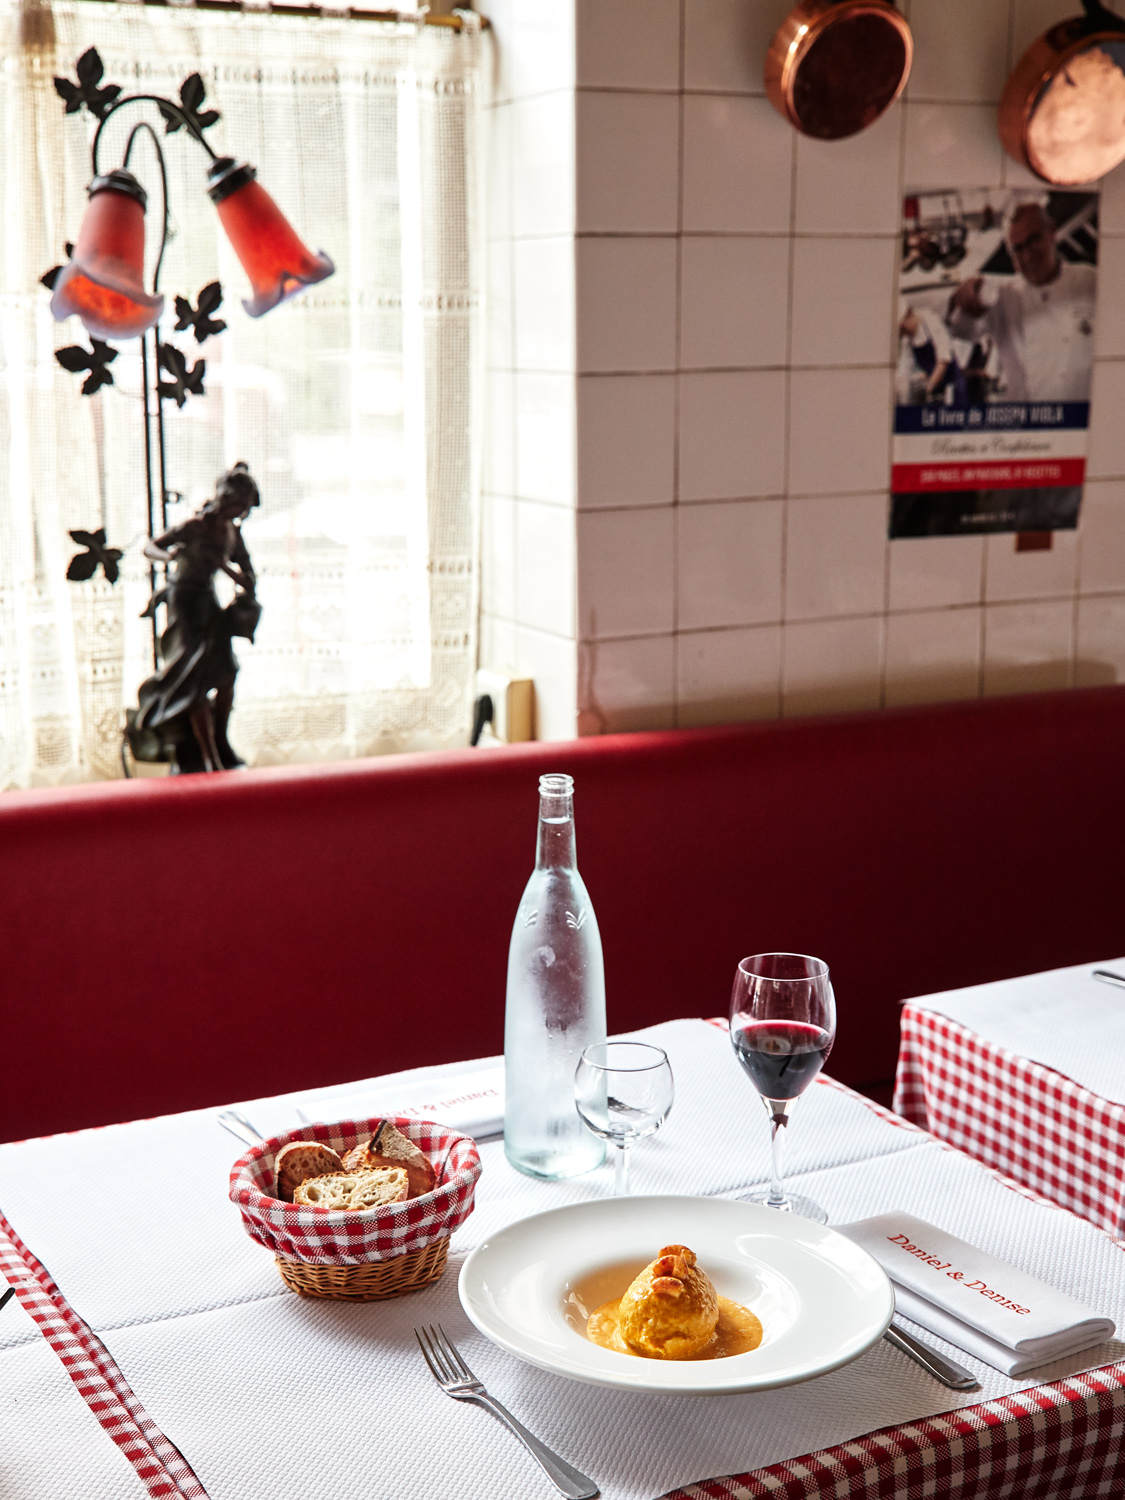 Lyon Bistrots - Food and Travel